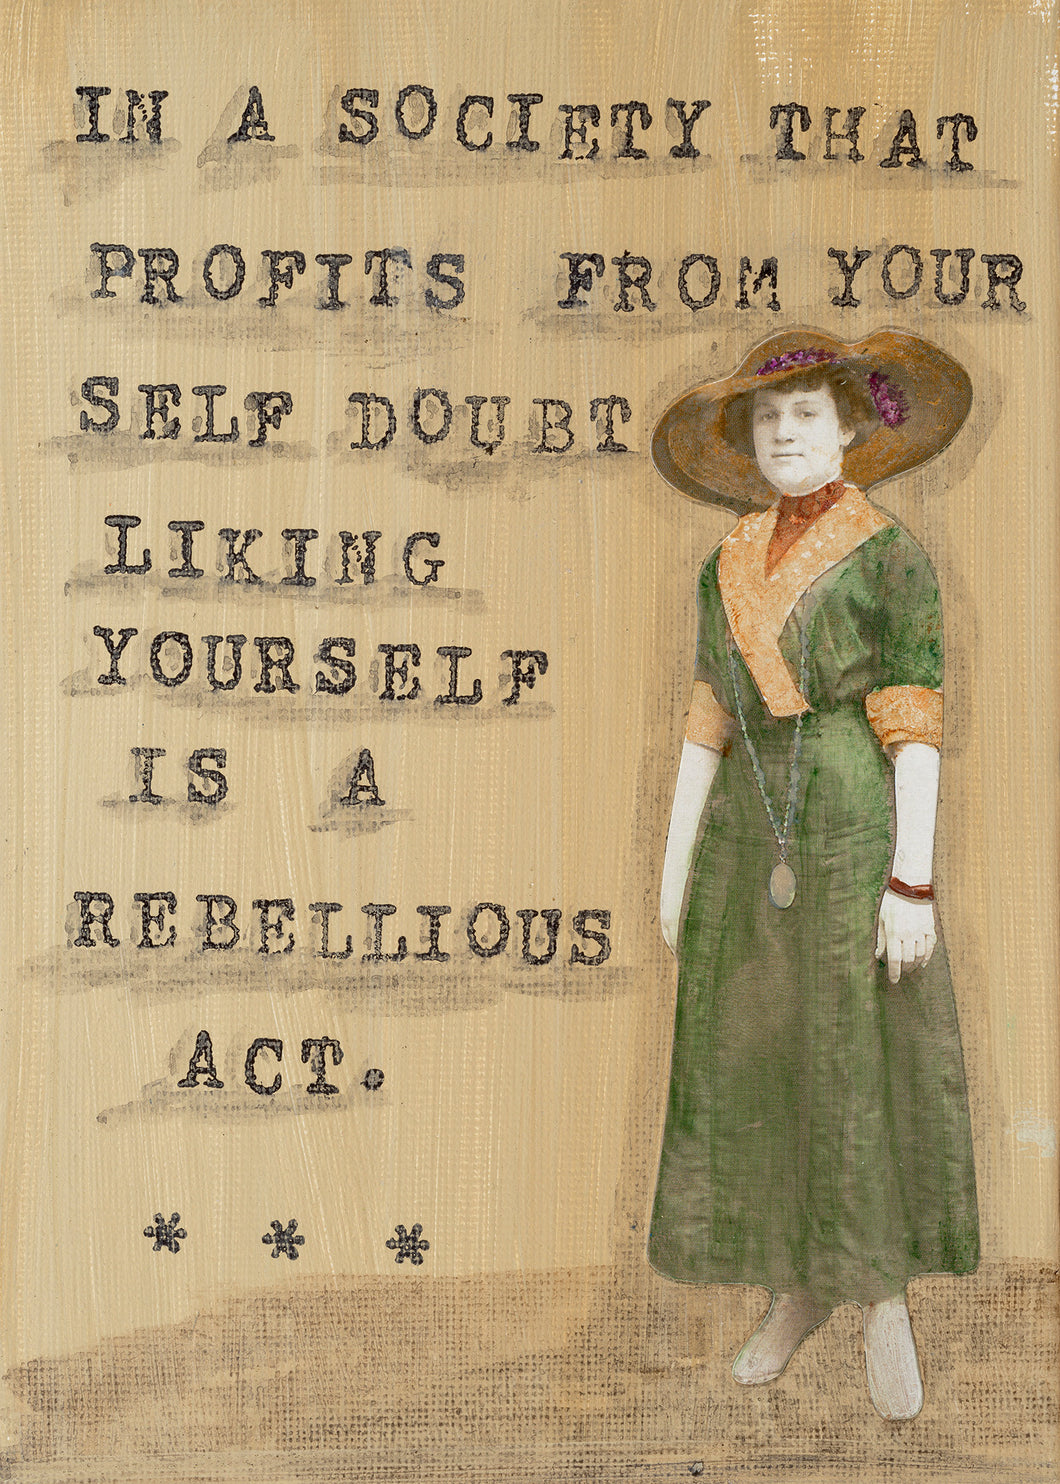 In a society that profits from your self doubt....